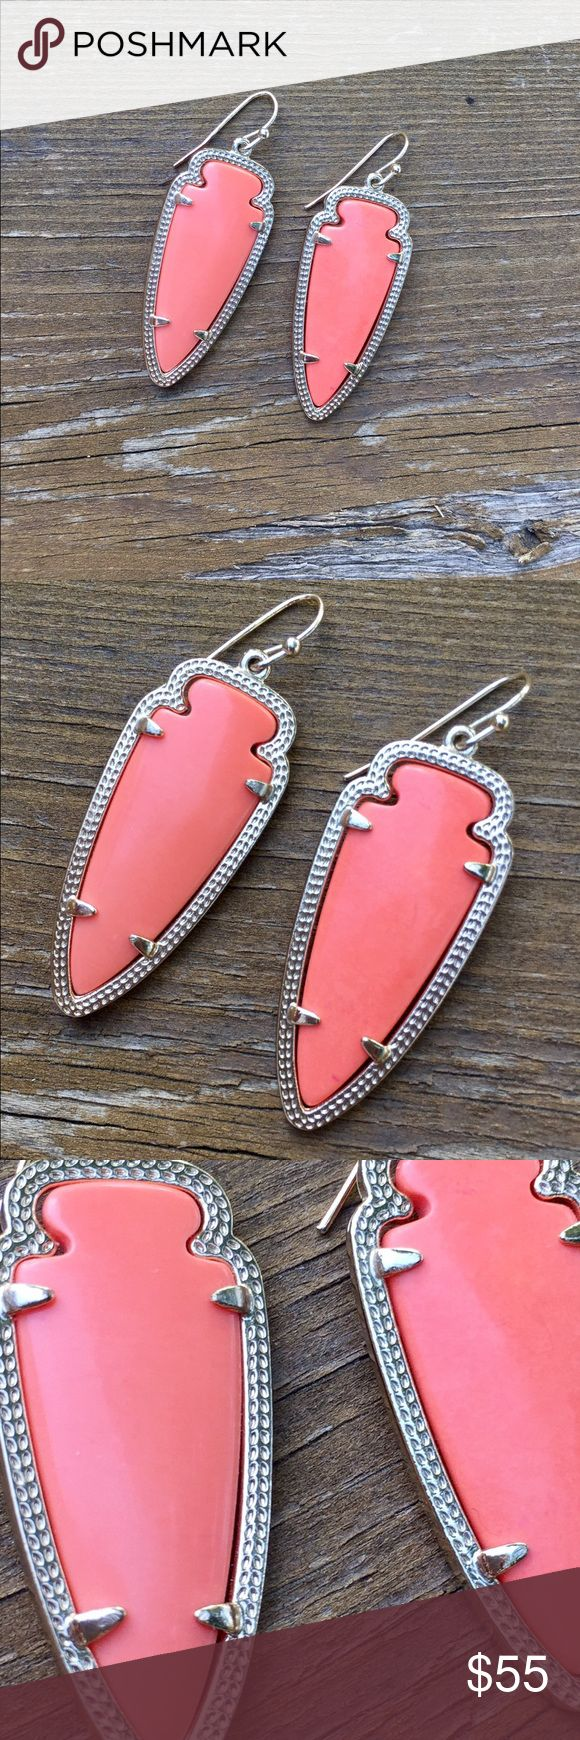 Kendra Scott Sky Earrings Kendra Scott Sky earrings in orange color. They look silver in the photos but they are gold! No sign of wear and still shiny with no tarnishing! Kendra Scott Jewelry Earrings